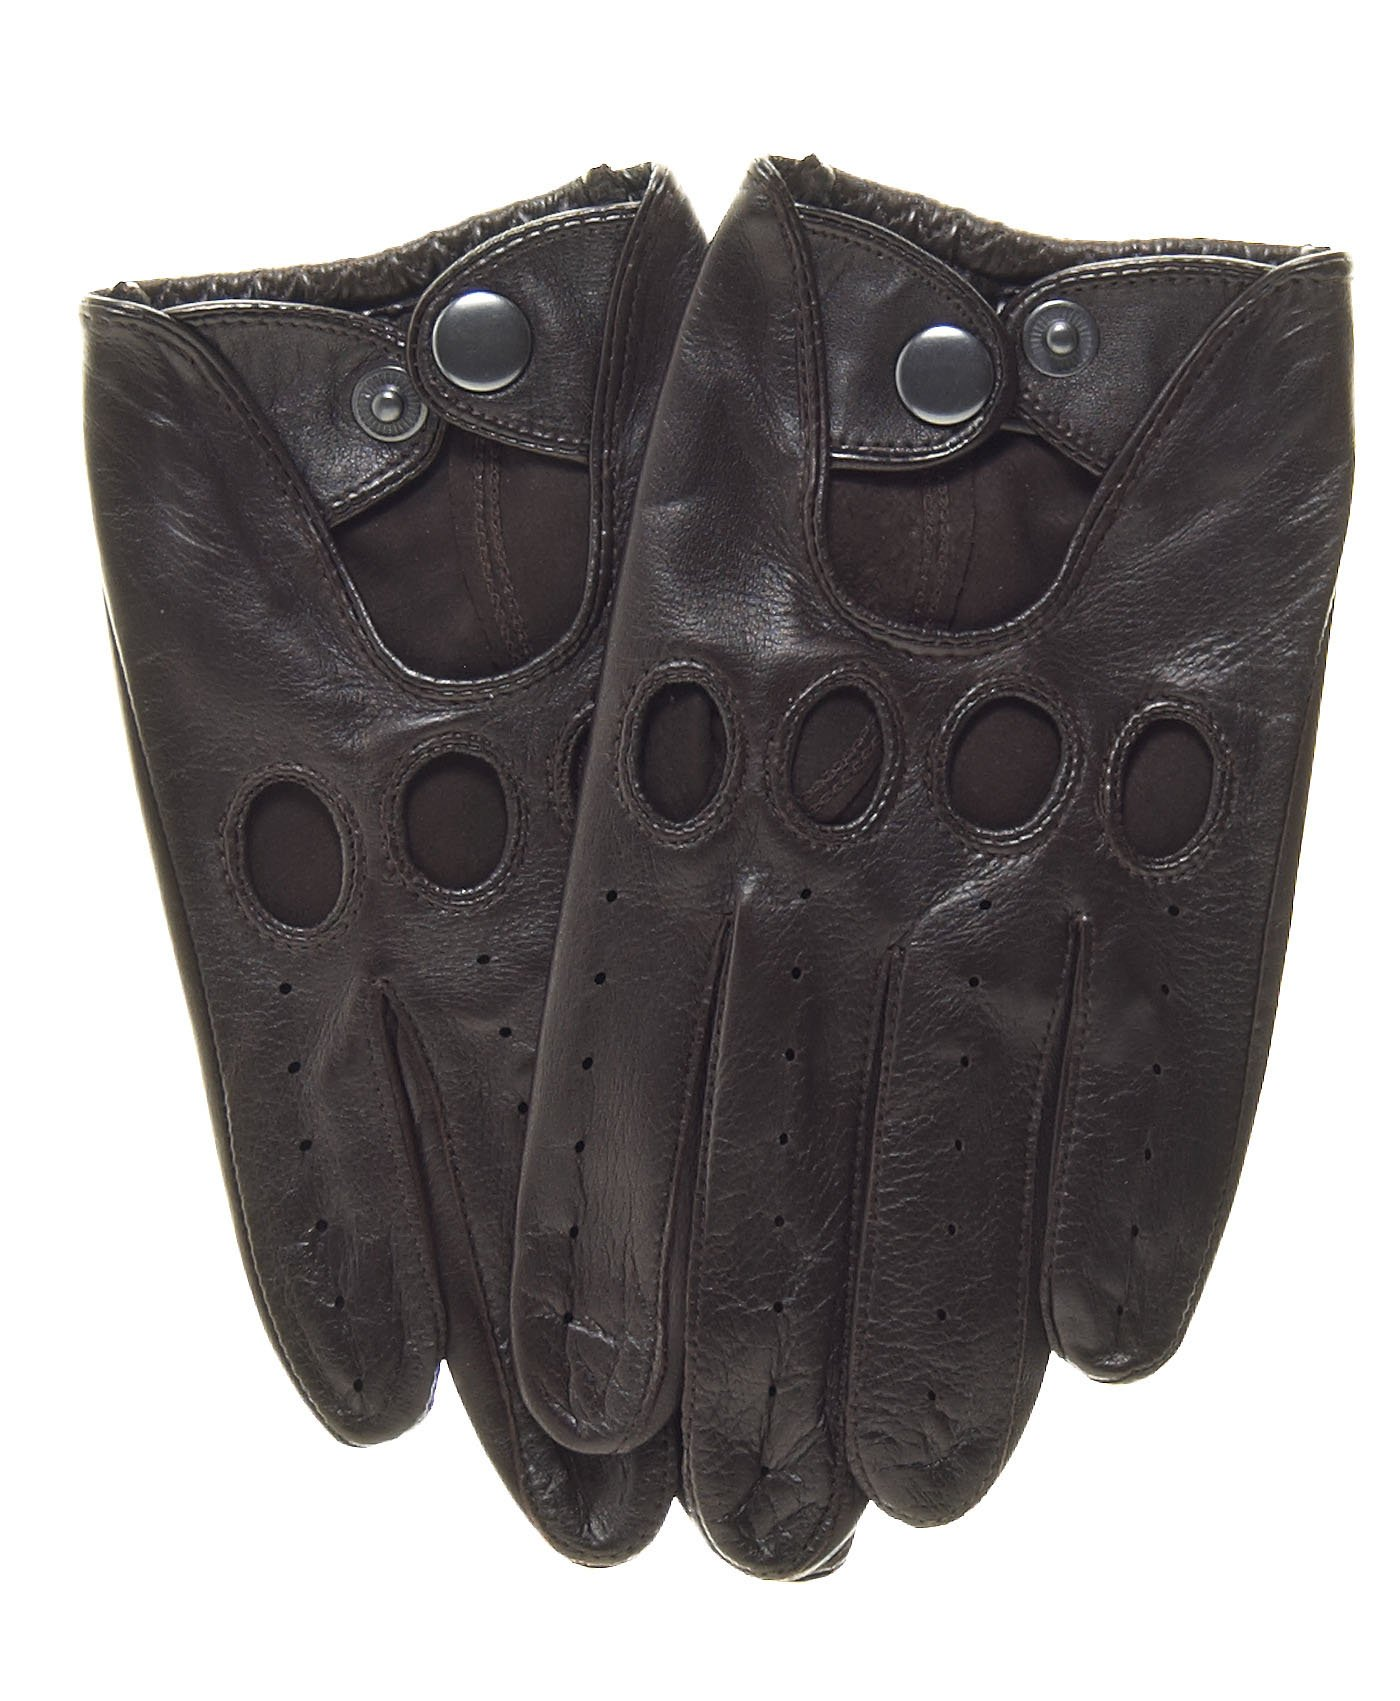 Pratt and Hart Touchscreen Leather Driving Gloves Size M Color Brown